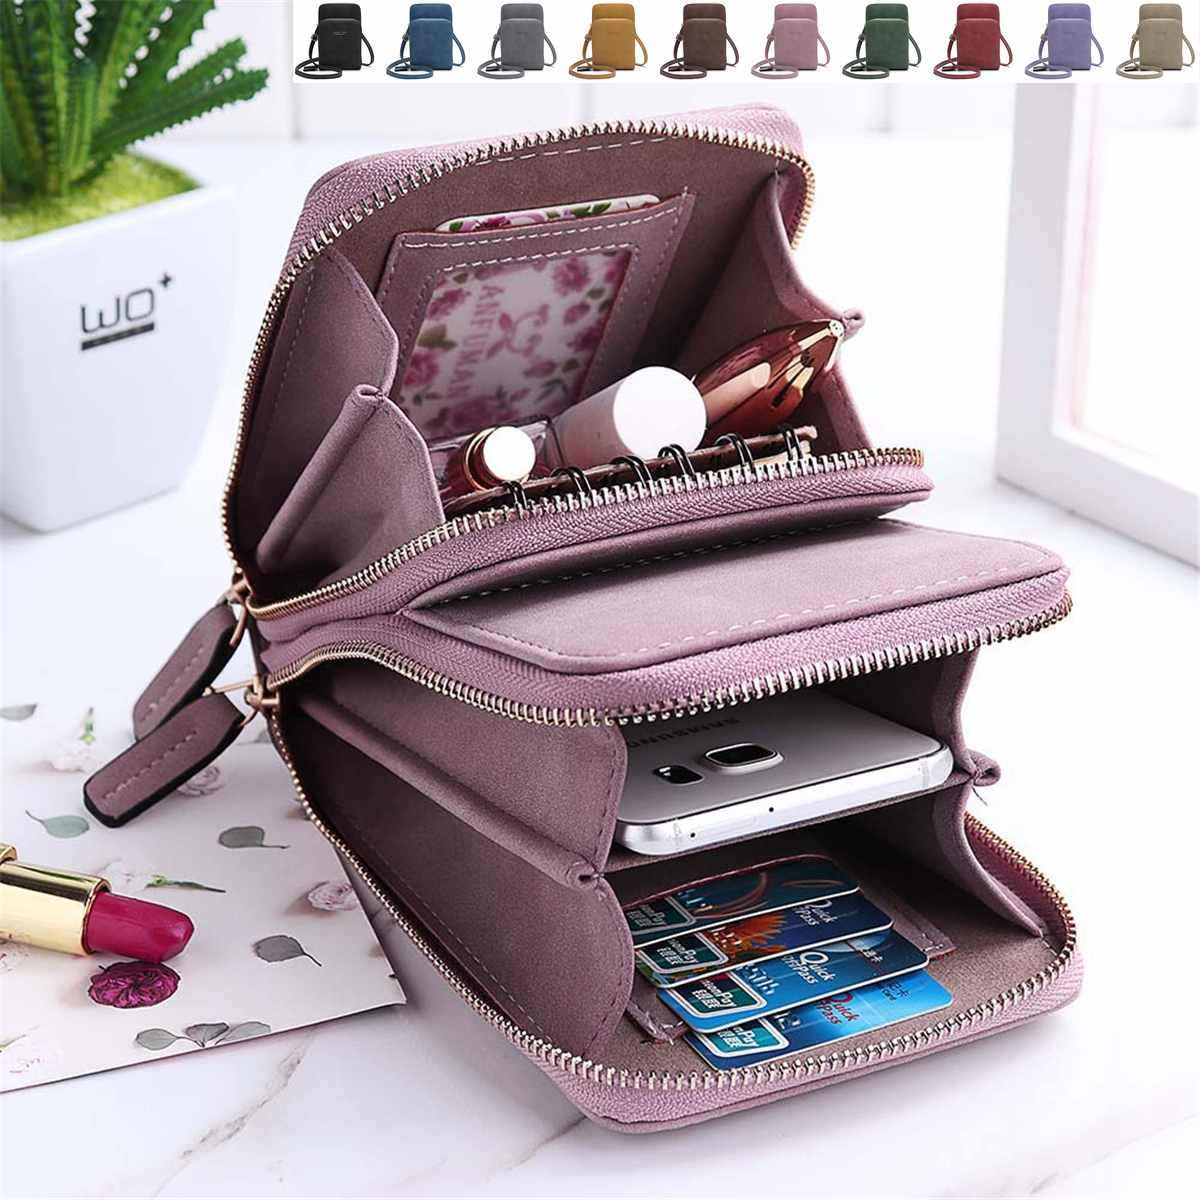 Osmond Bolsa Feminina Small Hand Bag PU Leather Mini Crossbody Bags Women Pink Messenger Bags Female Clutch Phone Purse Card Bag